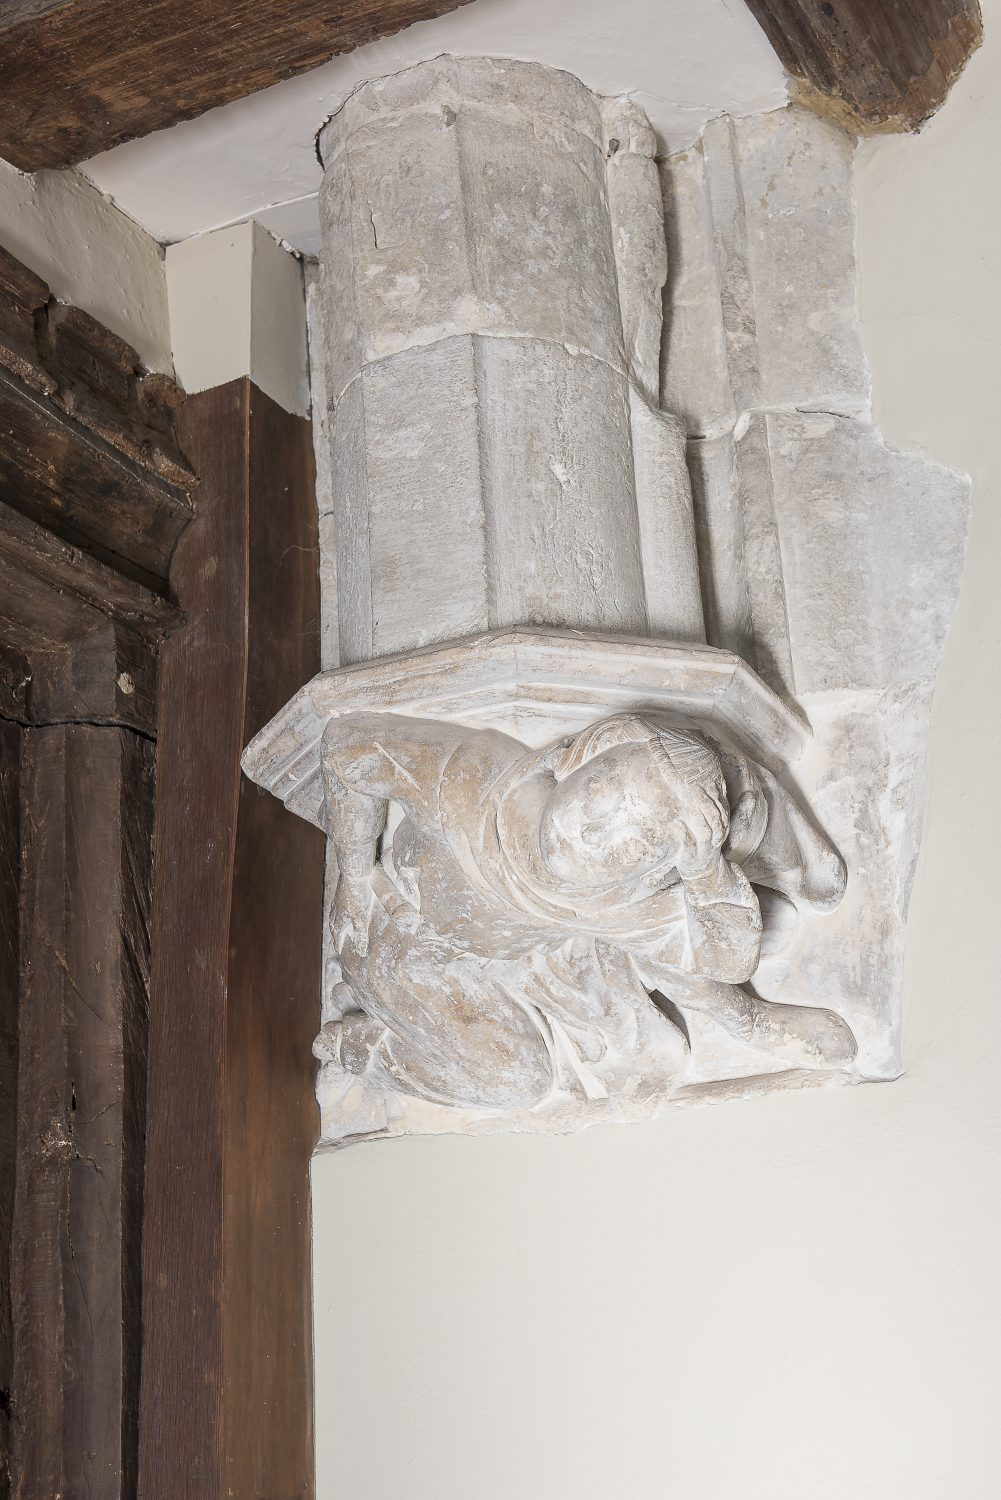 One of the building's original architectural details, an intricately carved corbel in the dining room